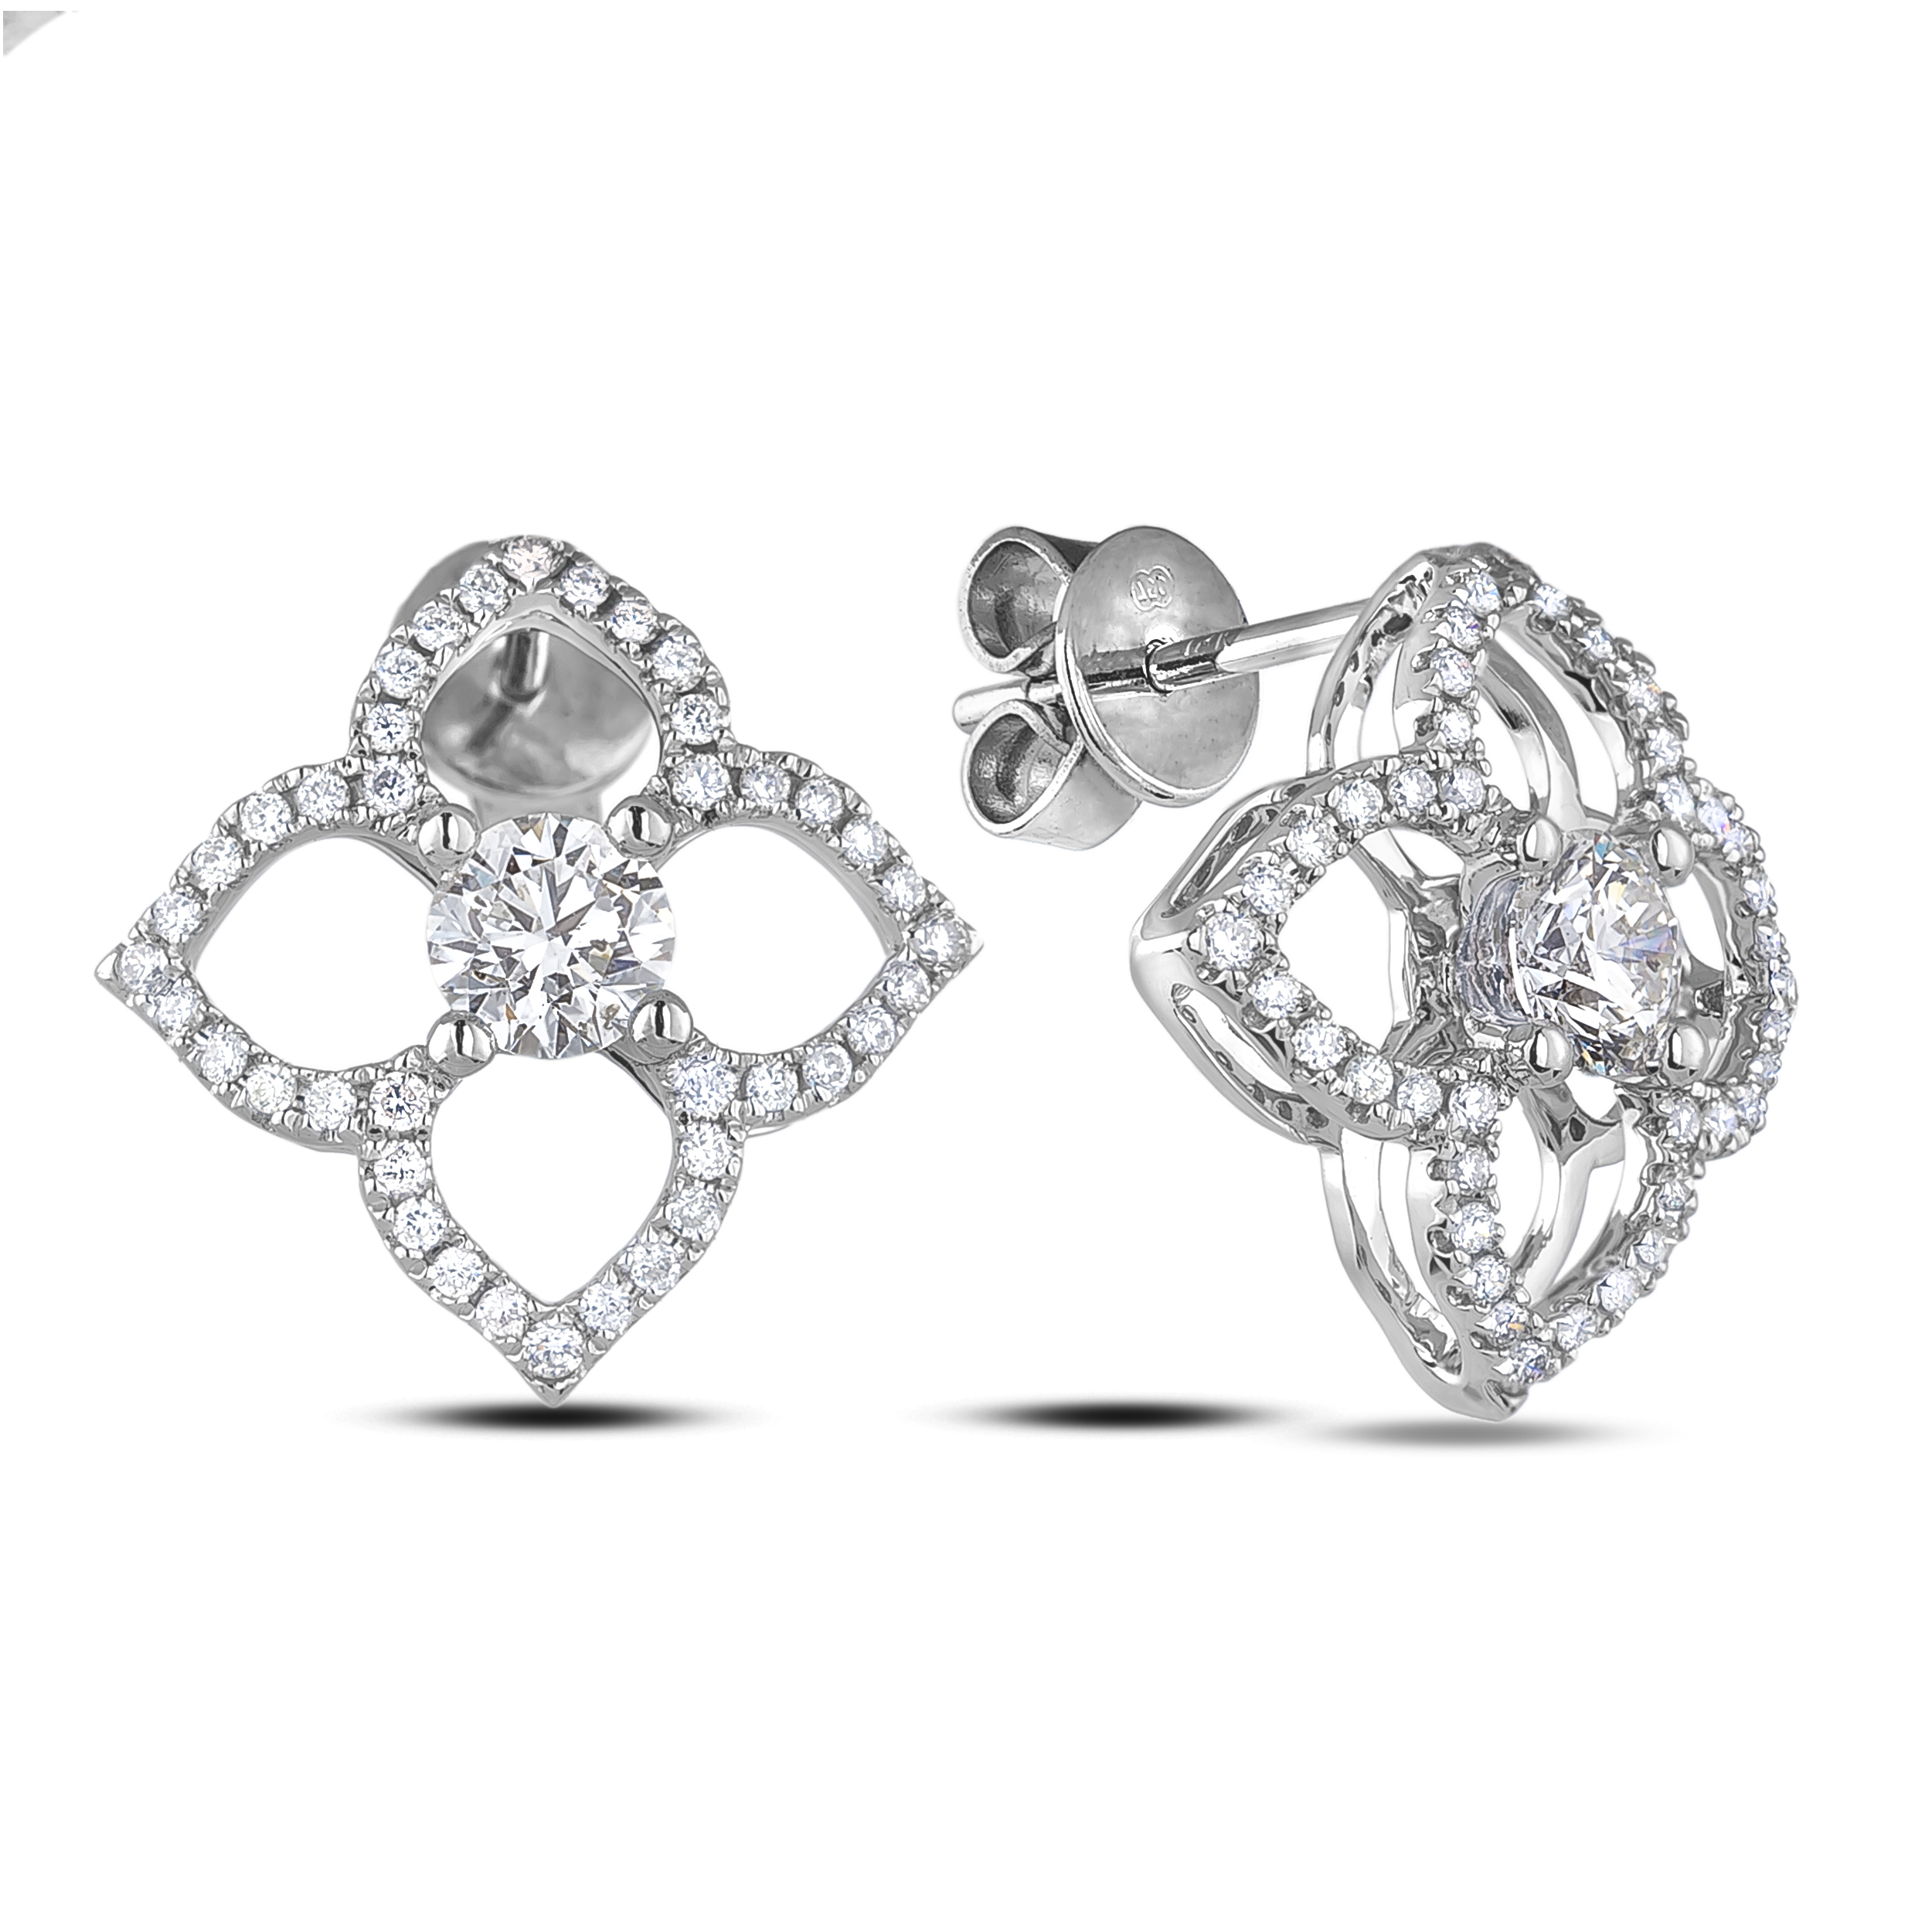 Diamond Stud Earrings SGE332 (Earrings)